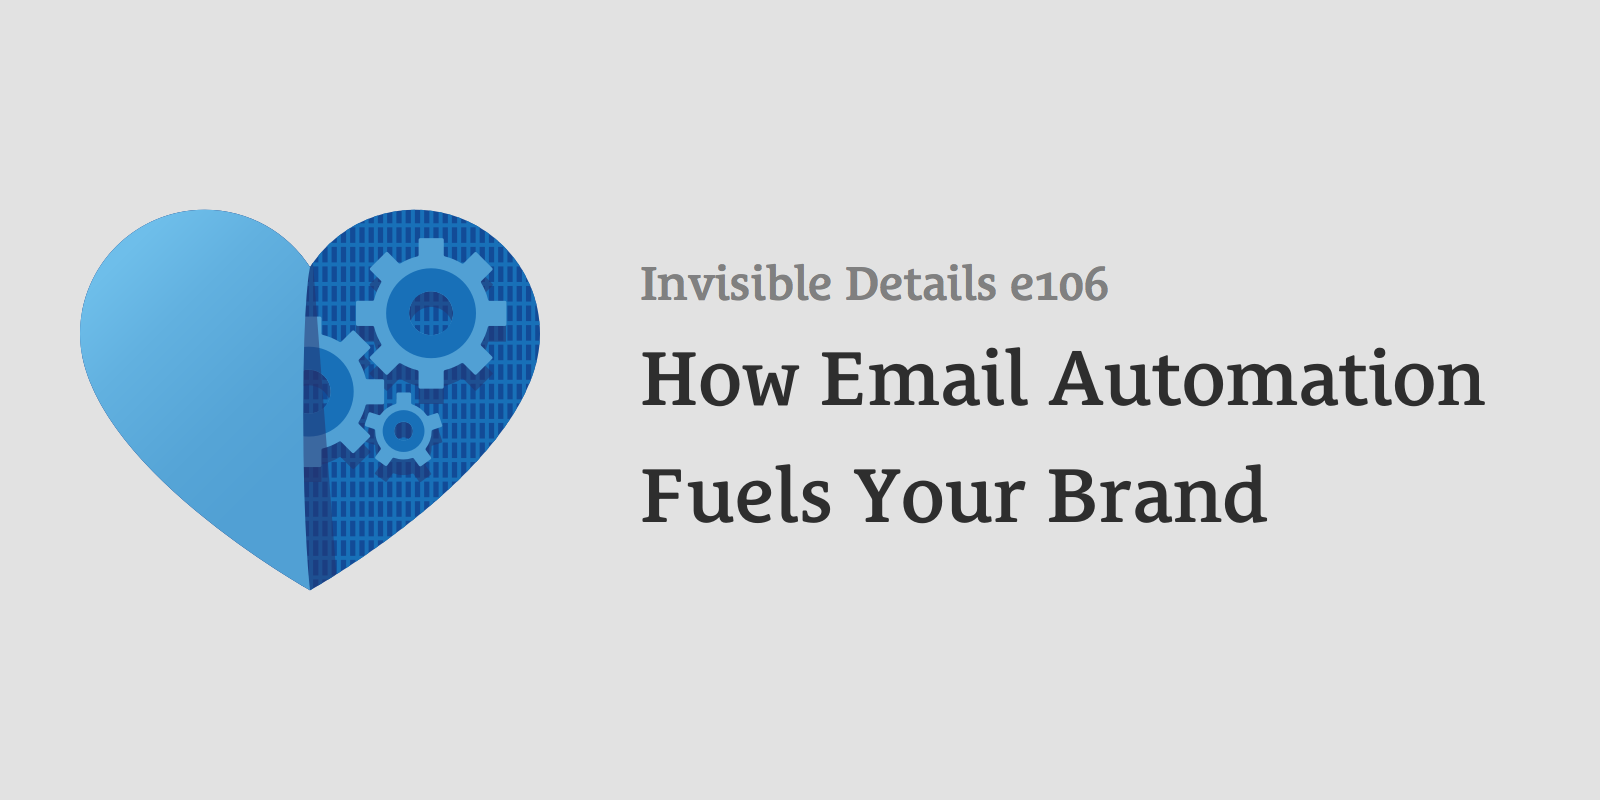 How Email Automation Fuels Your Brand